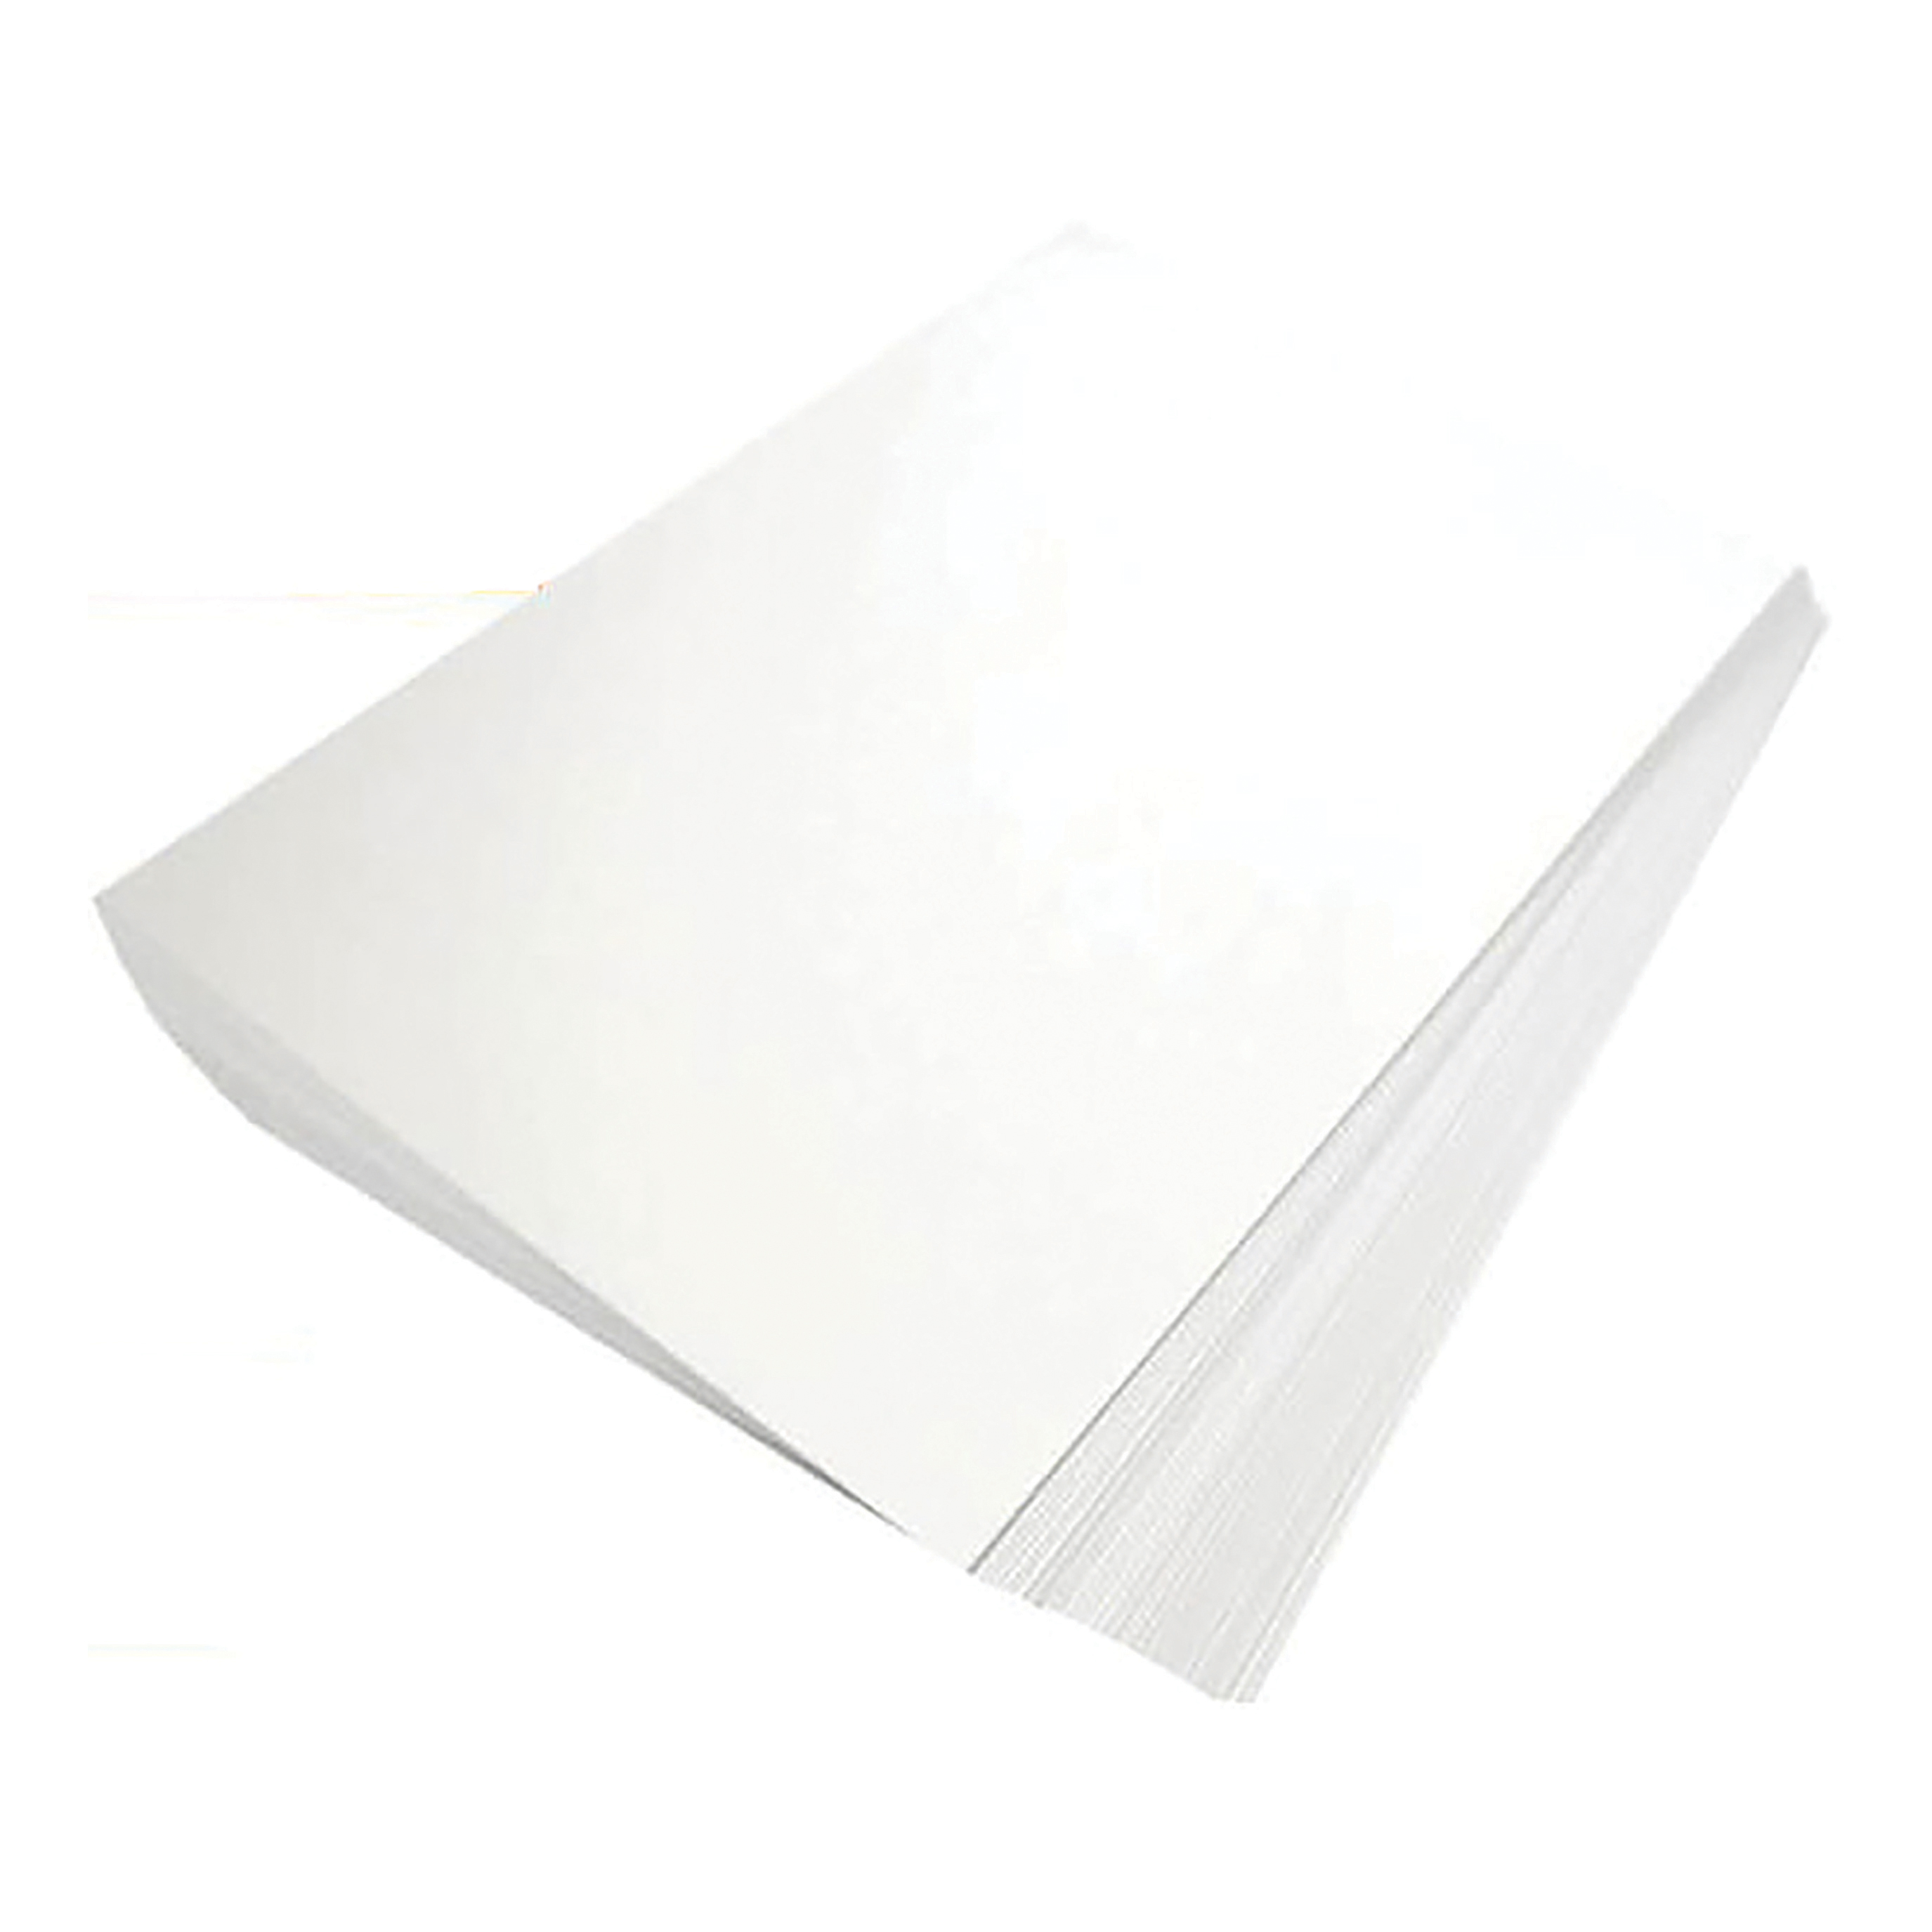 A4 5 Star Elite Premium Business Paper Laid Finish Ream-Wrapped 100gsm A4 High White 500 Sheets